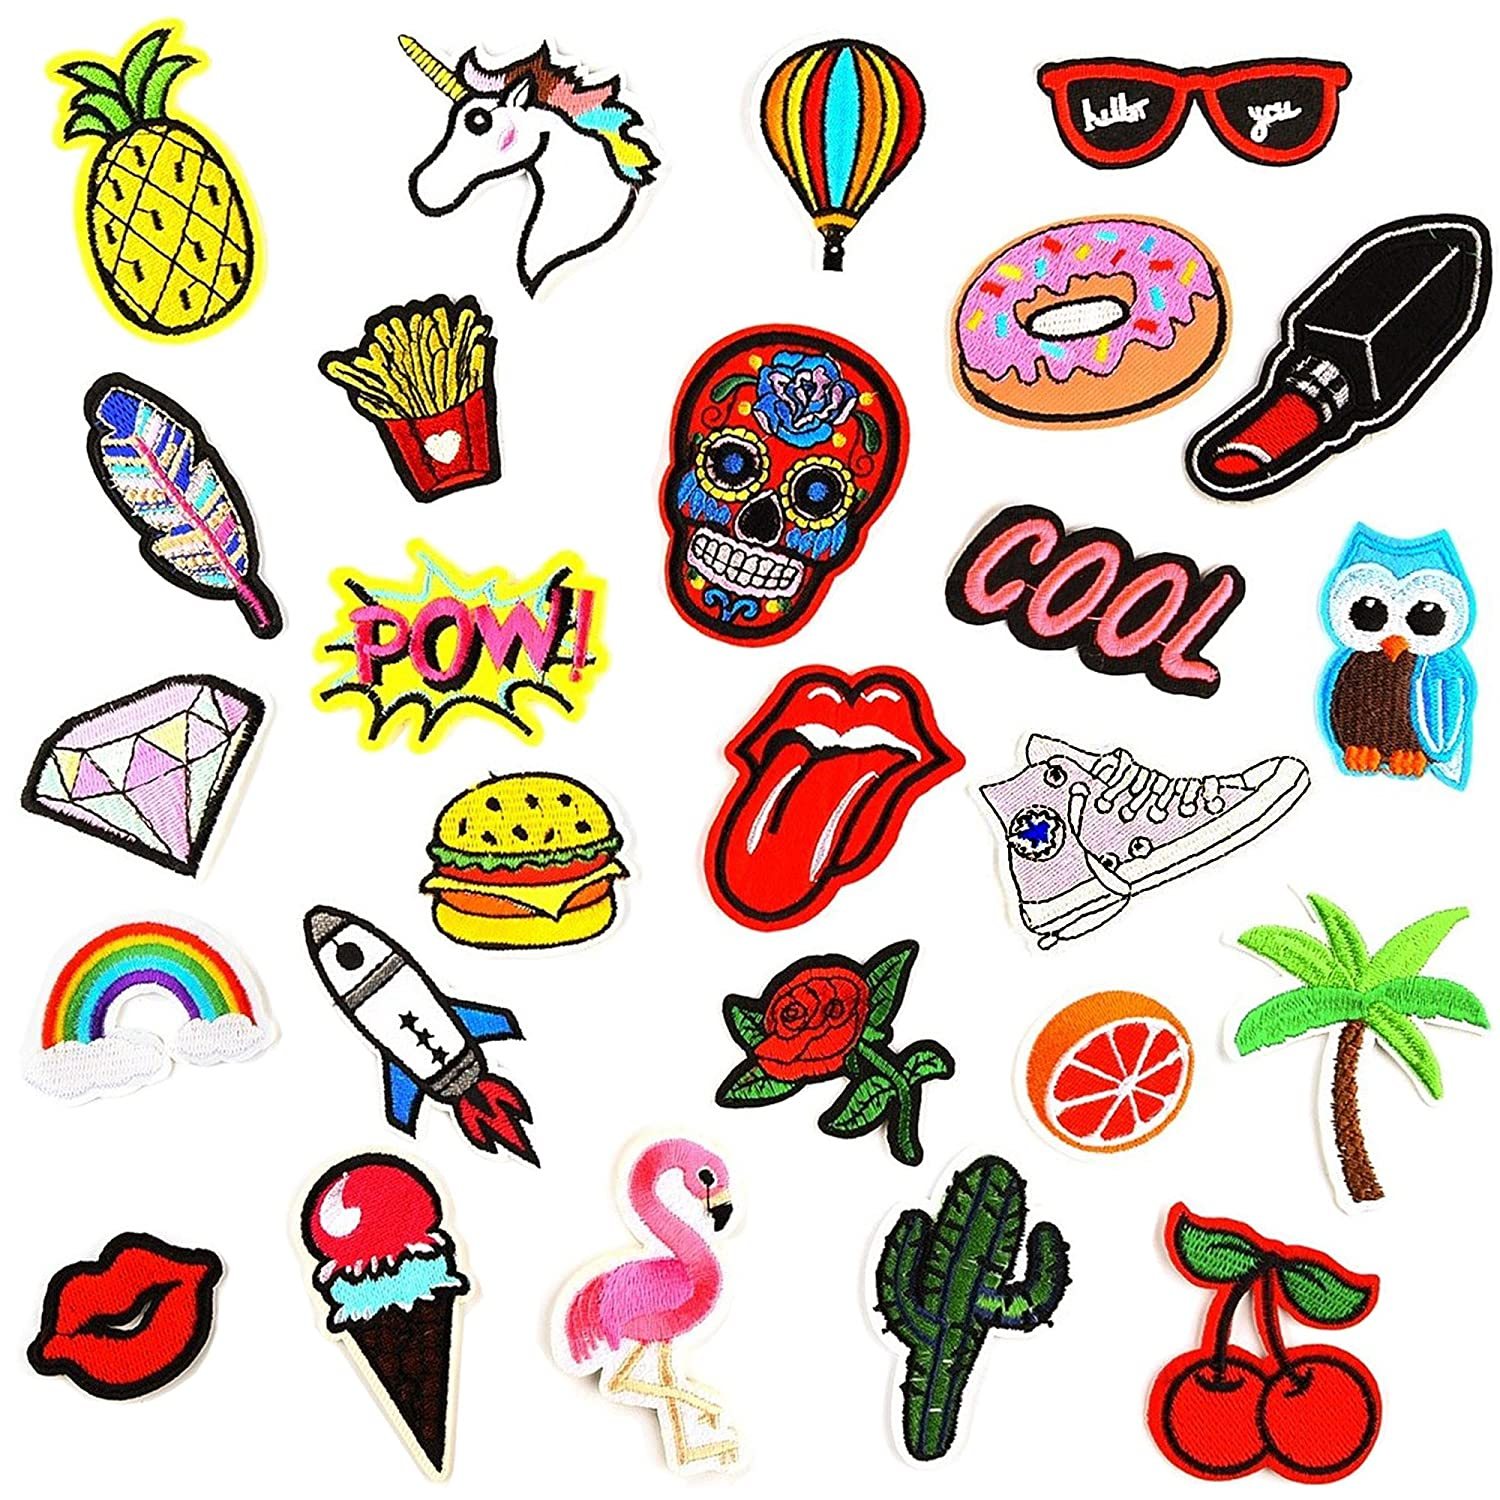 Bowisheet Iron On Patches 26 Pcs Embroidered Motif Applique Assorted Size Decoration Sew On Patches for DIY Jeans Jacket, Clothing, Handbag, Shoes,Caps 4337010886